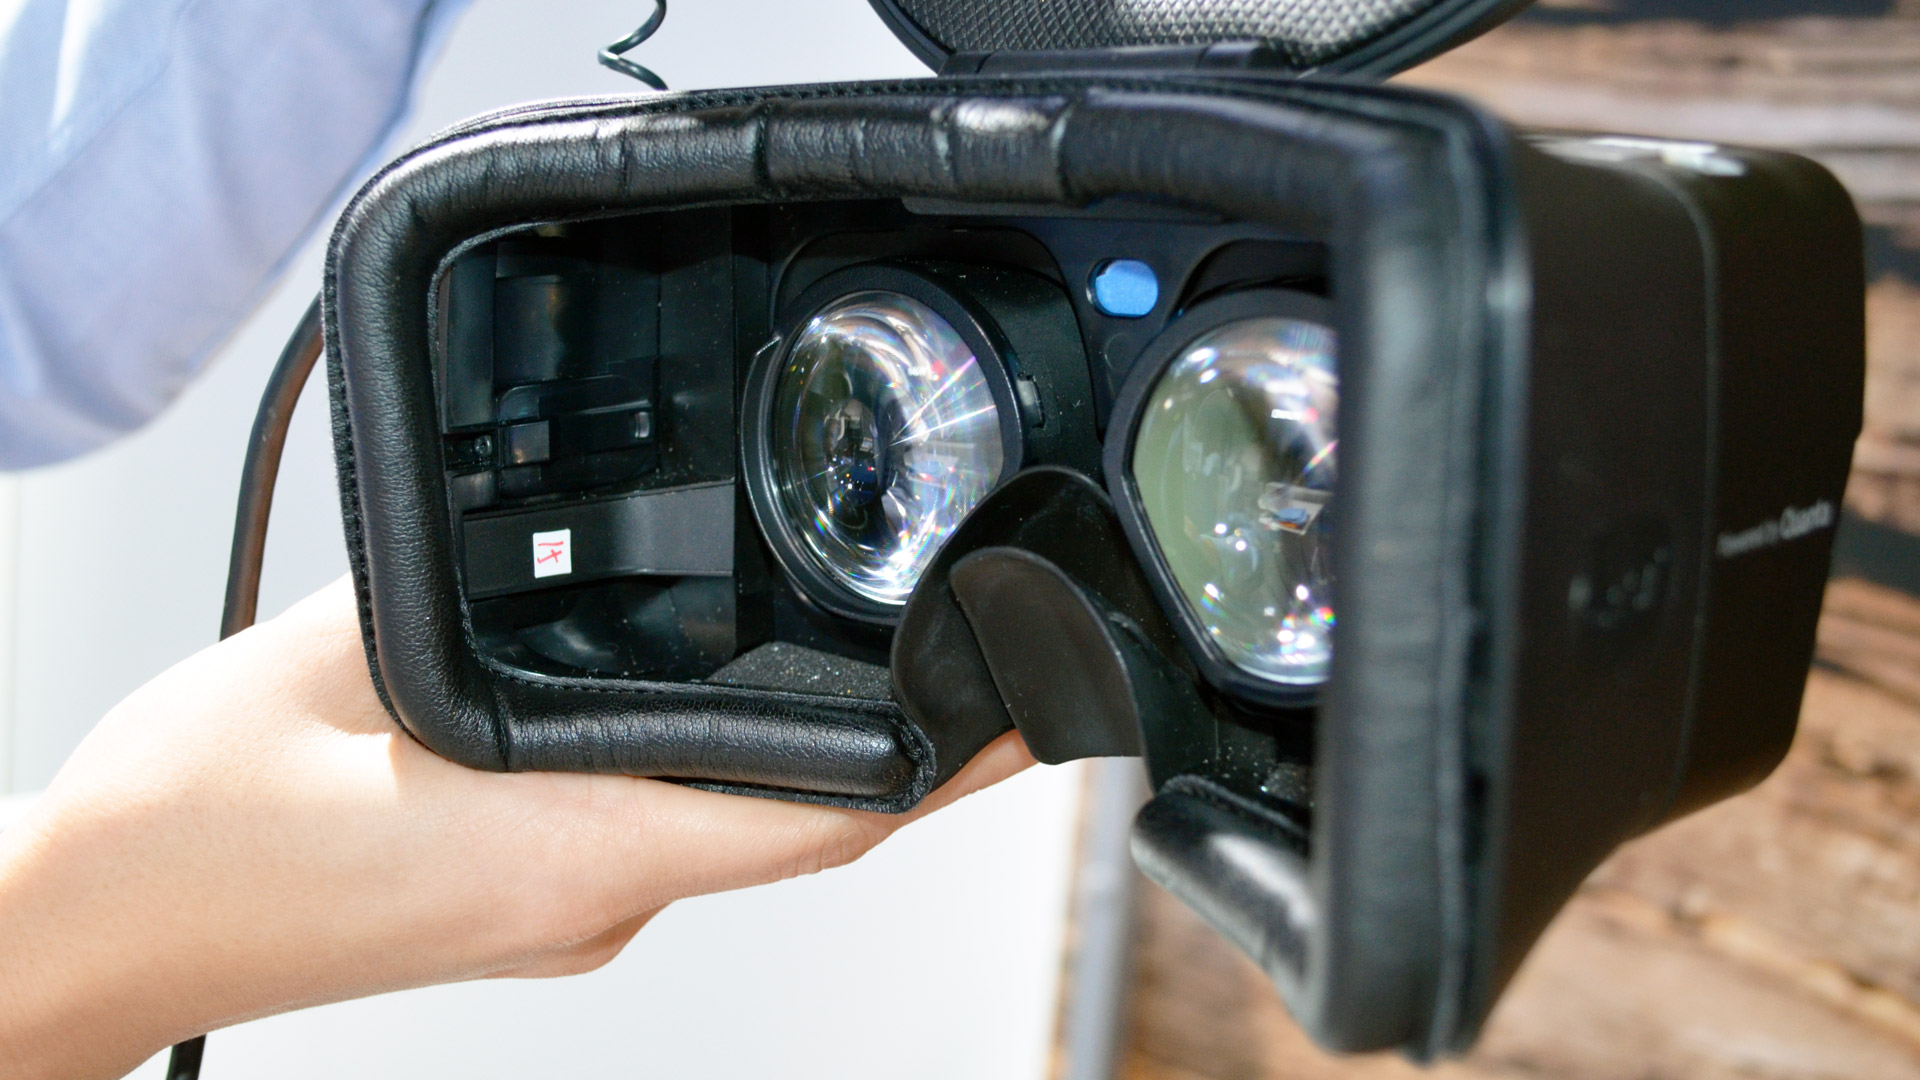 CES 2019: Qualcomm VR Reference Headset Has 2x Pixels of Vive Pro